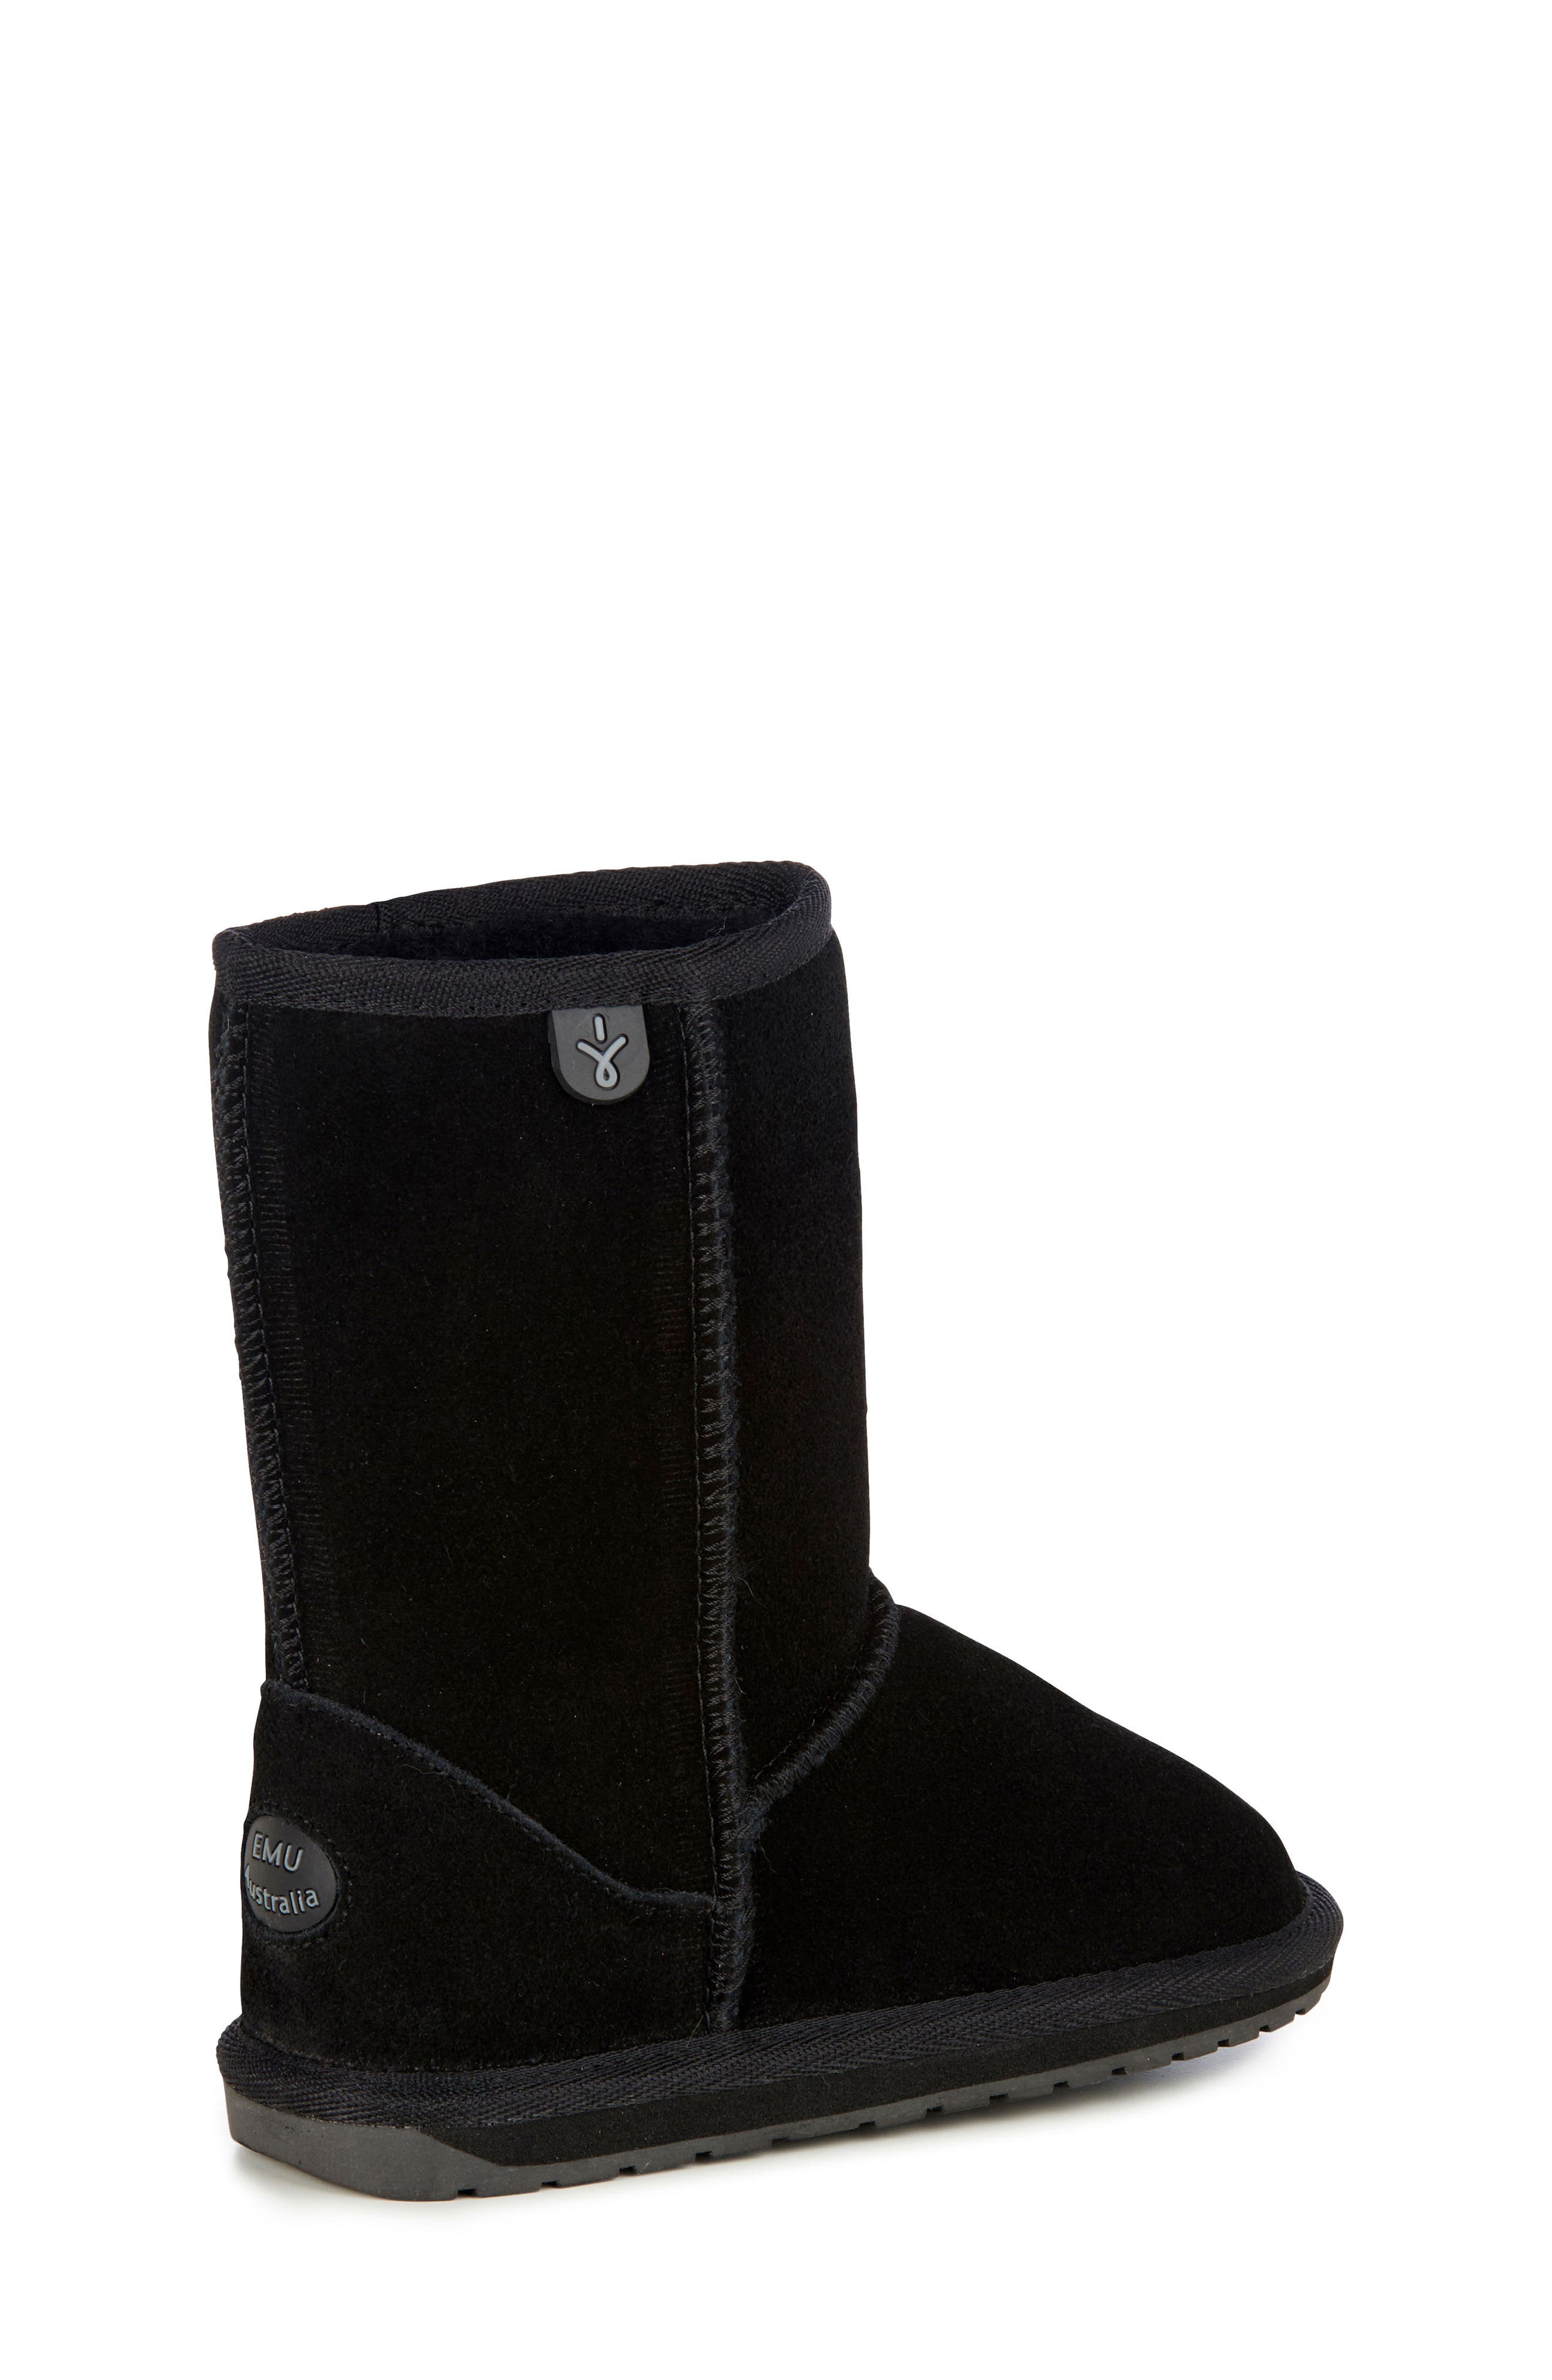 Wallaby Lo Boot,                             Alternate thumbnail 10, color,                             BLACK